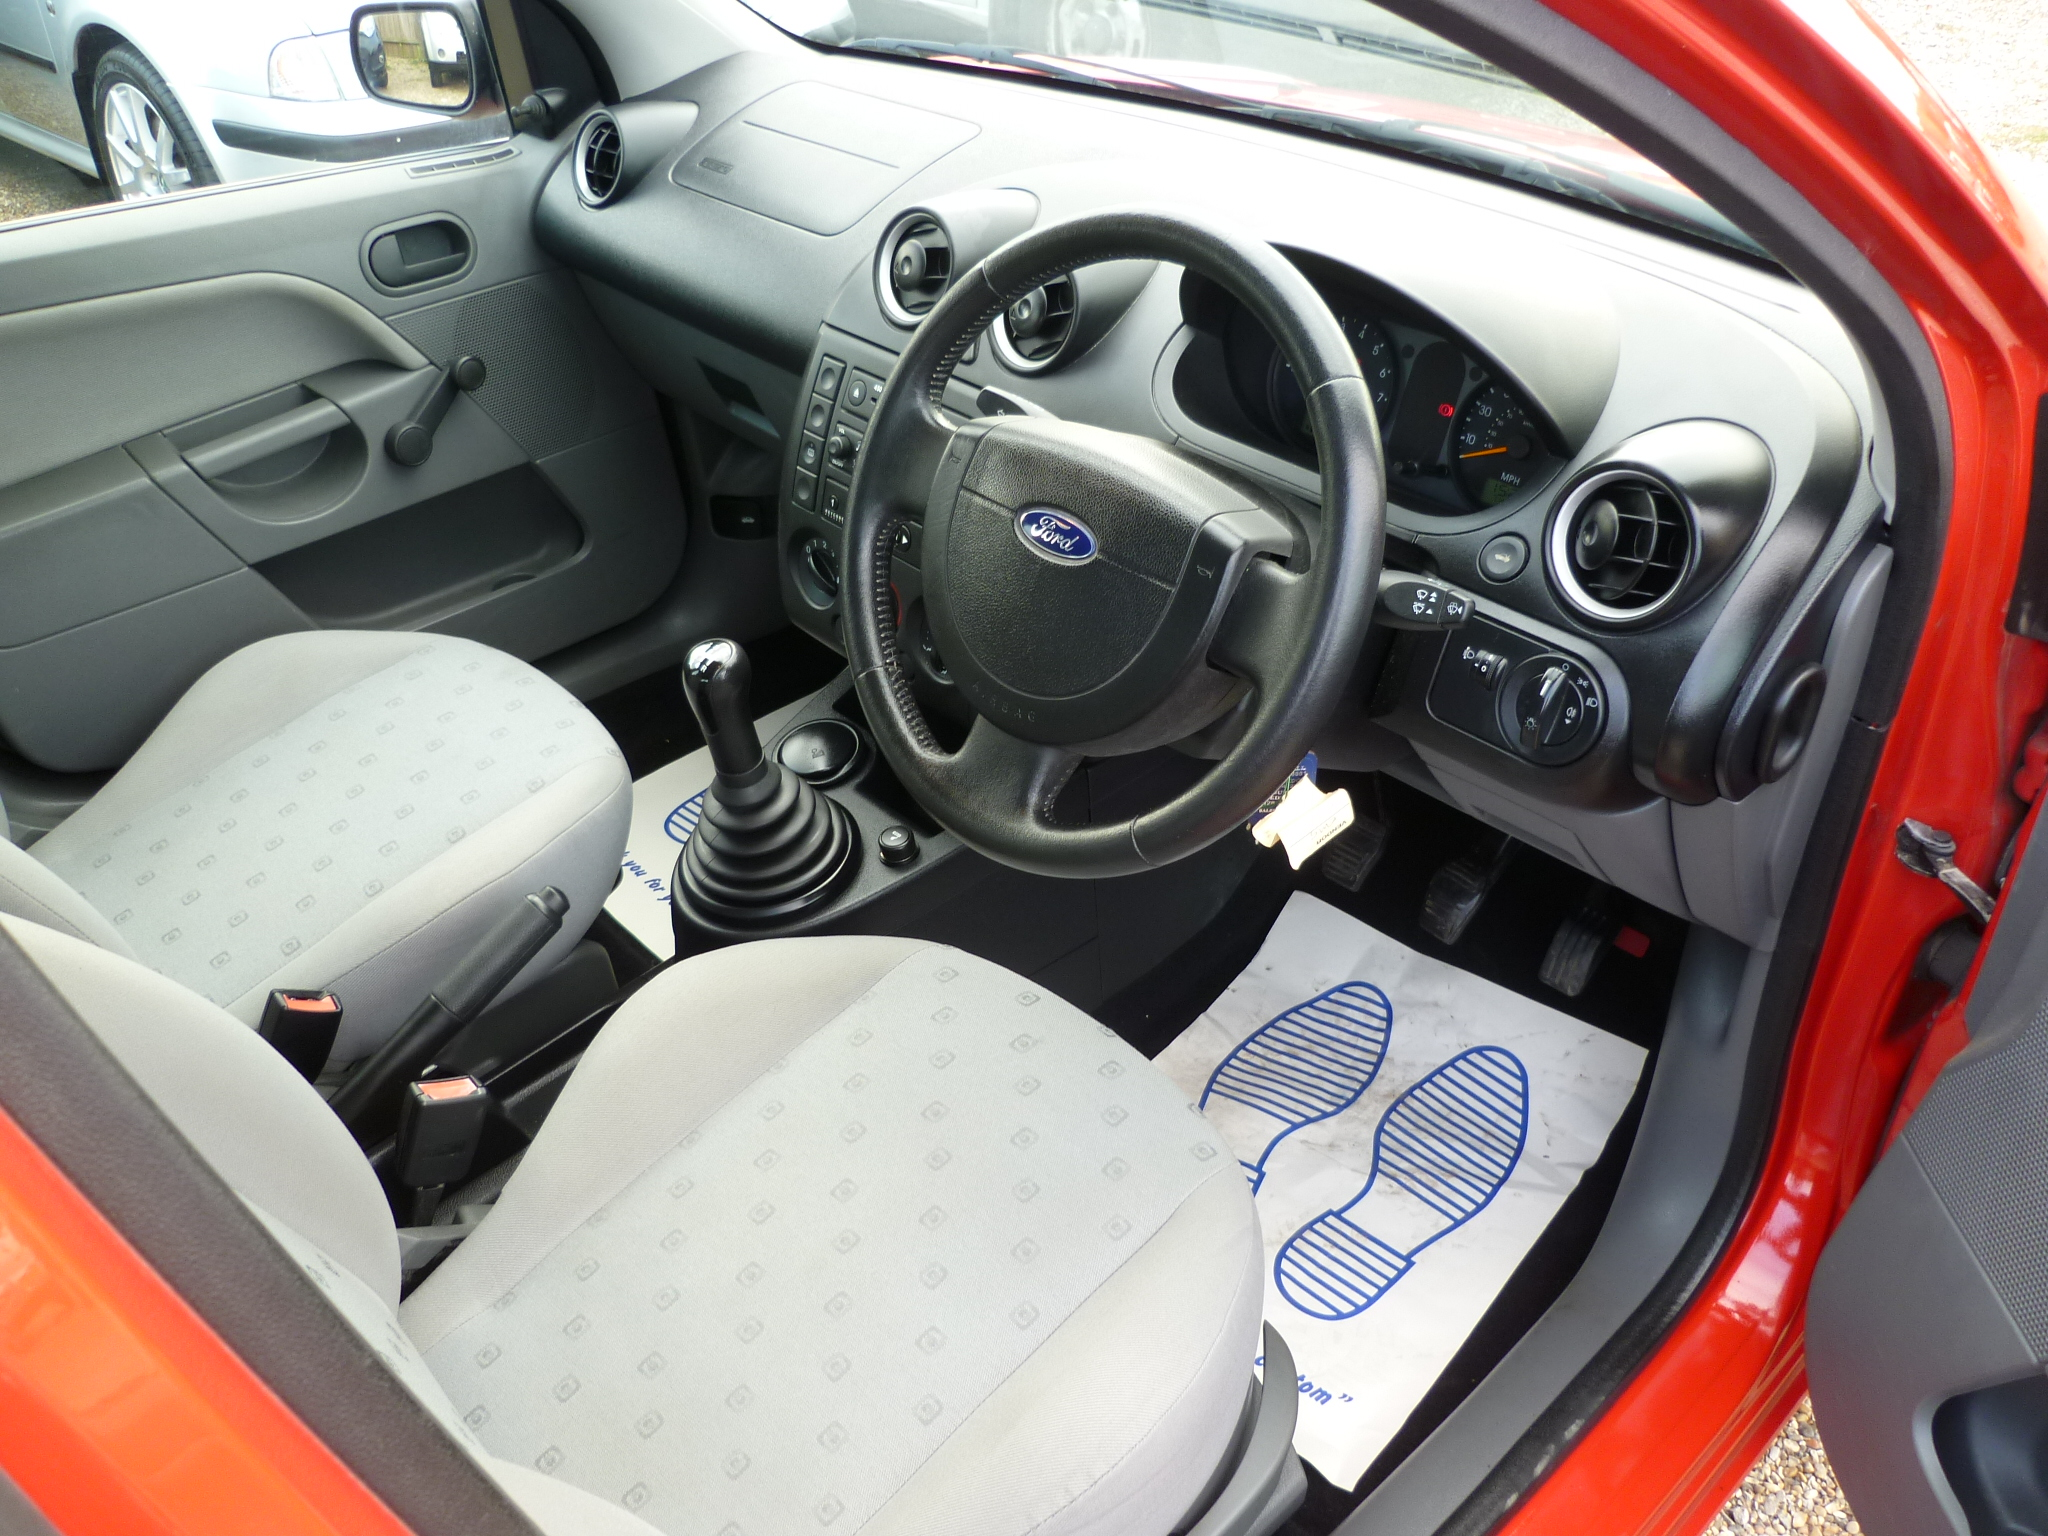 FORD FIESTA 1.3 FINESSE 5DR 011